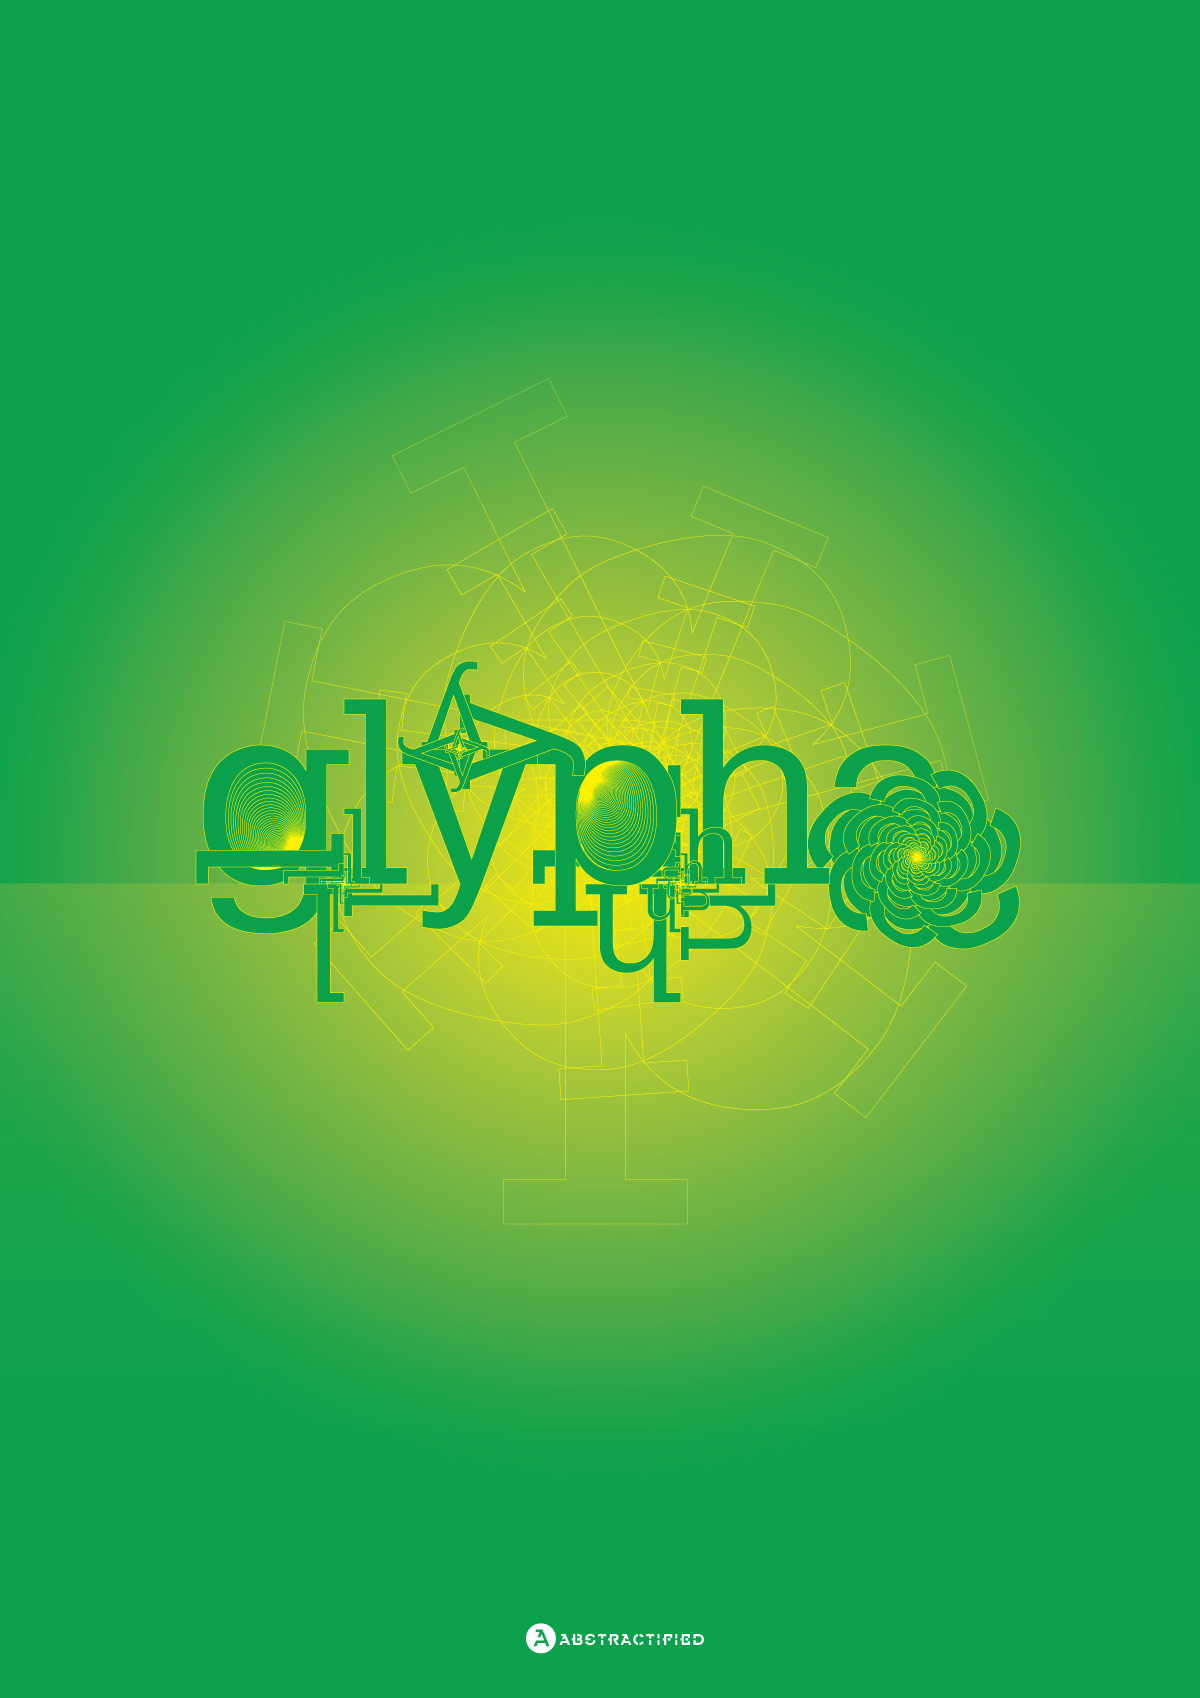 Abstractified Type Glypha